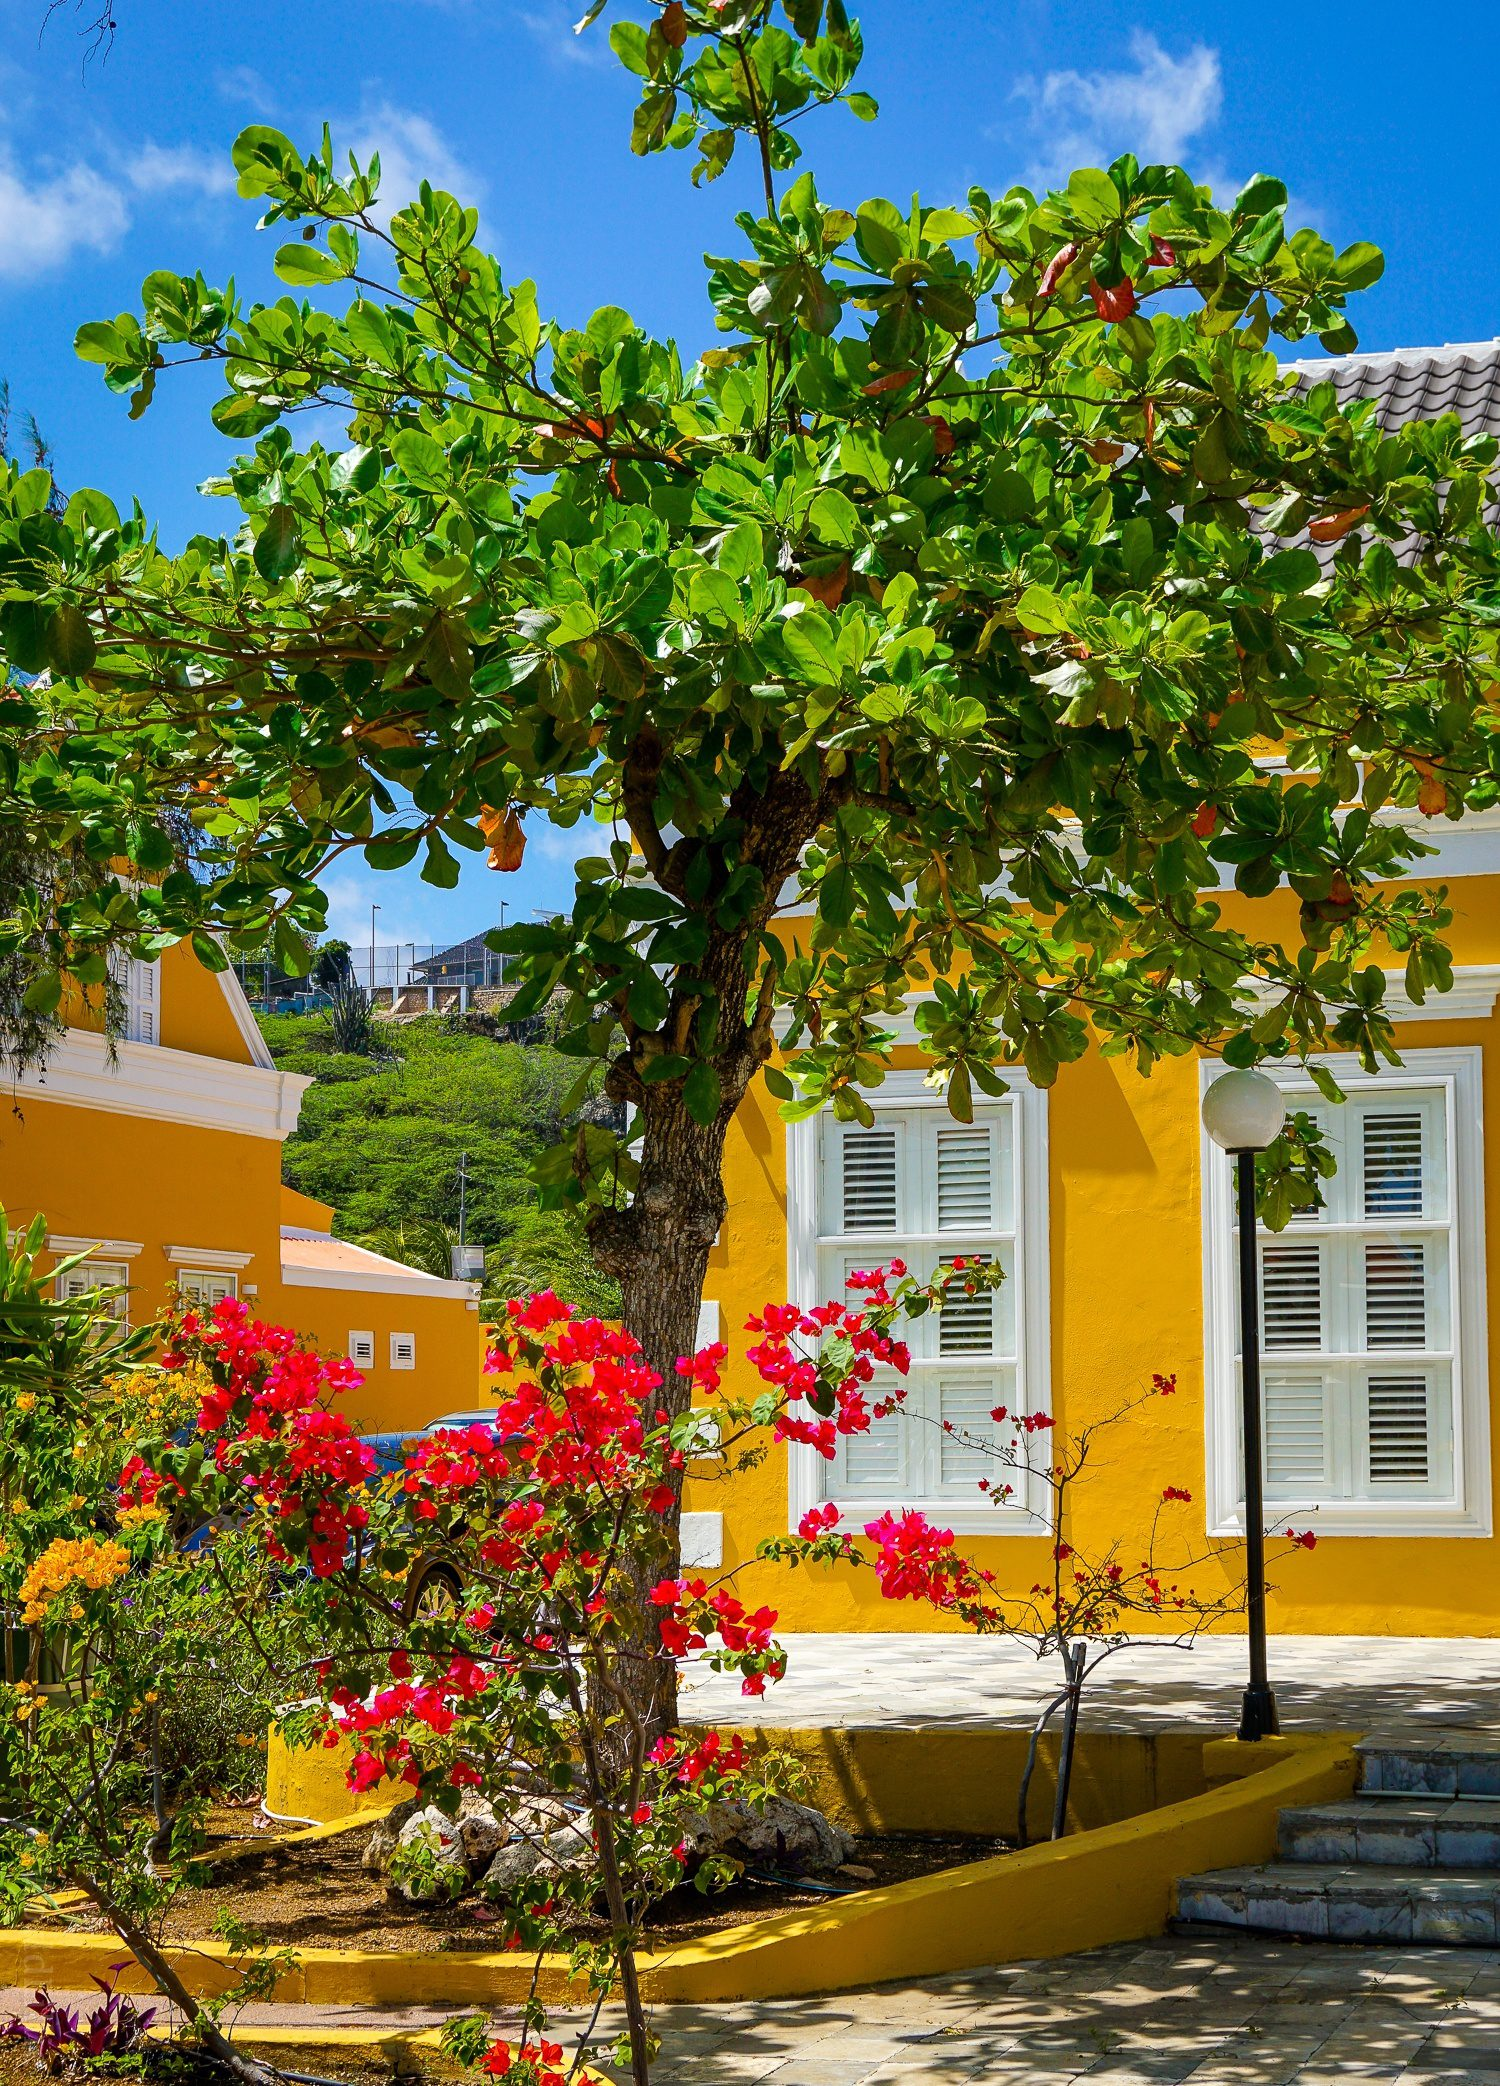 Willemstad, Curaçao has great architecture, and the Scharloo neighborhood features historic mansions that look like brightly-colored wedding cakes! See these happy, fun buildings here.